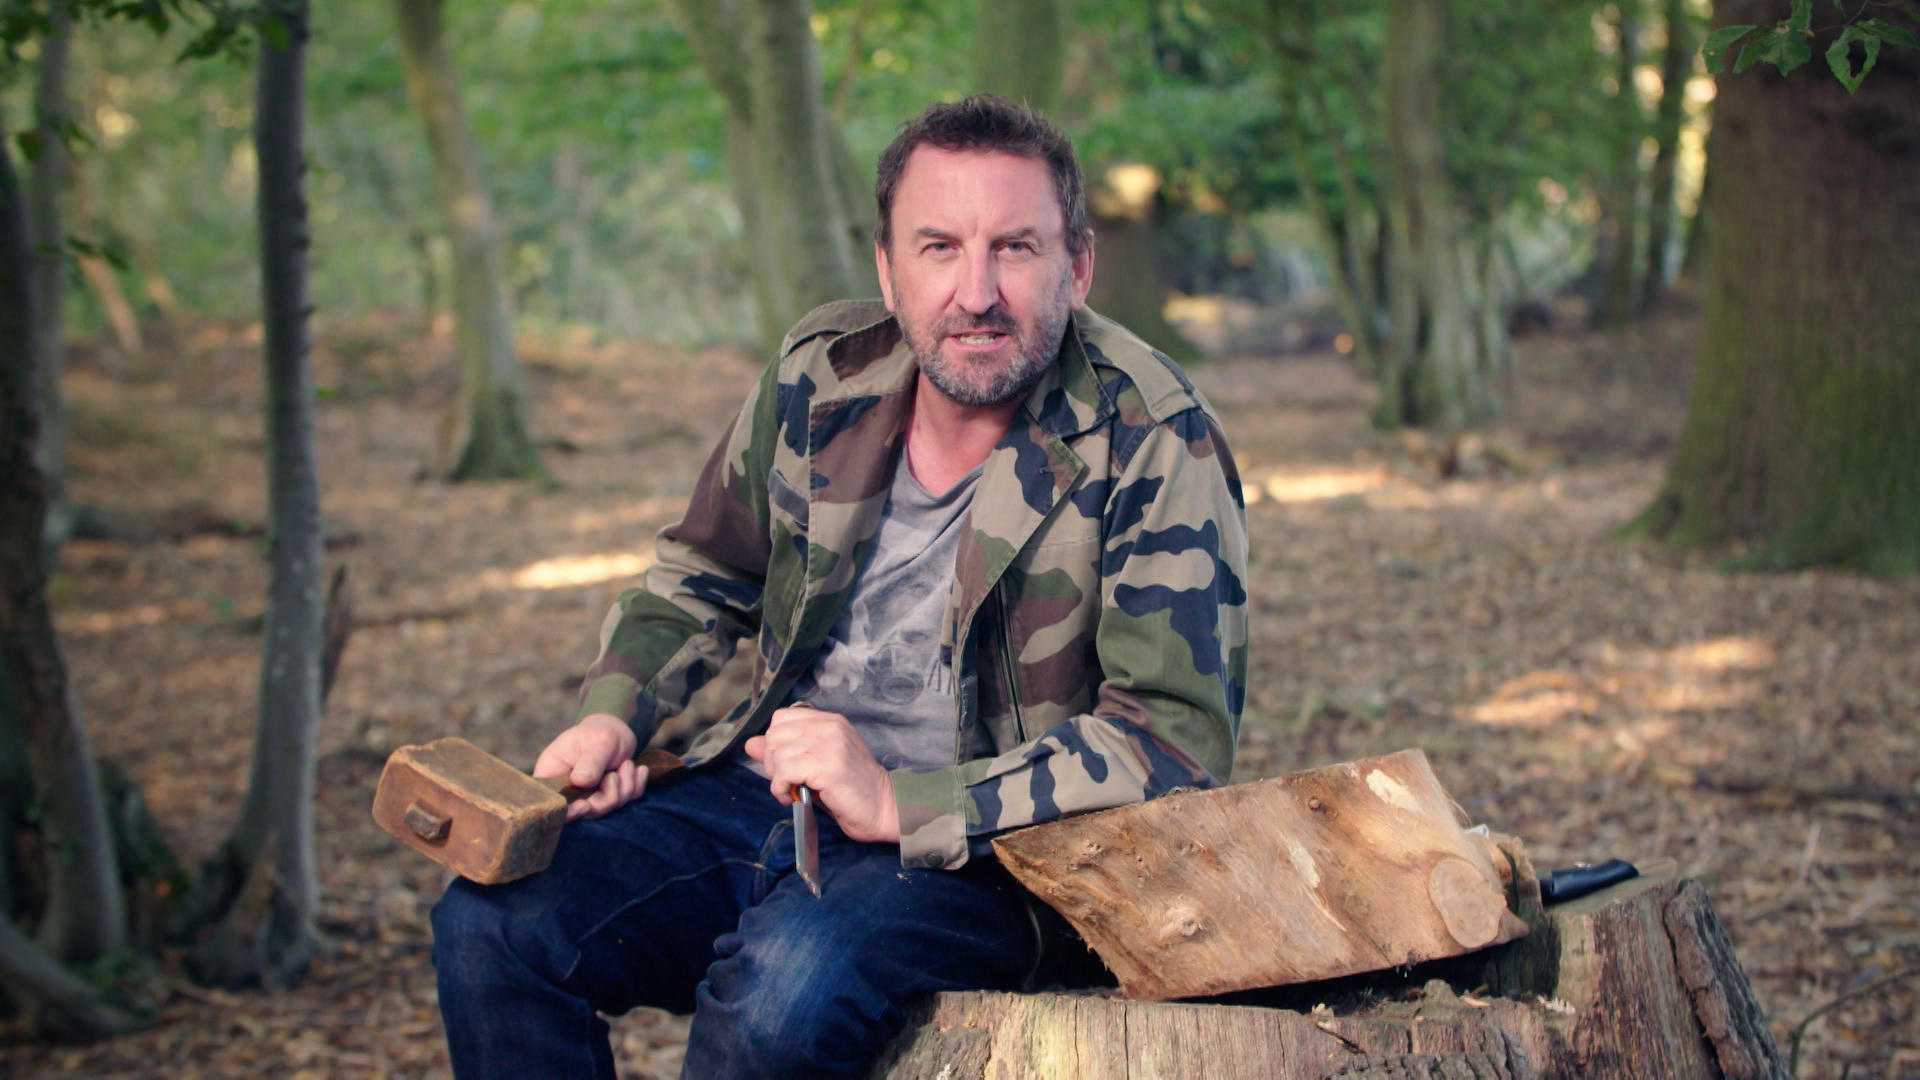 Lee Mack in a publicity still for The Chop. (© A&E Television Networks 1996-2020. All rights reserved.)